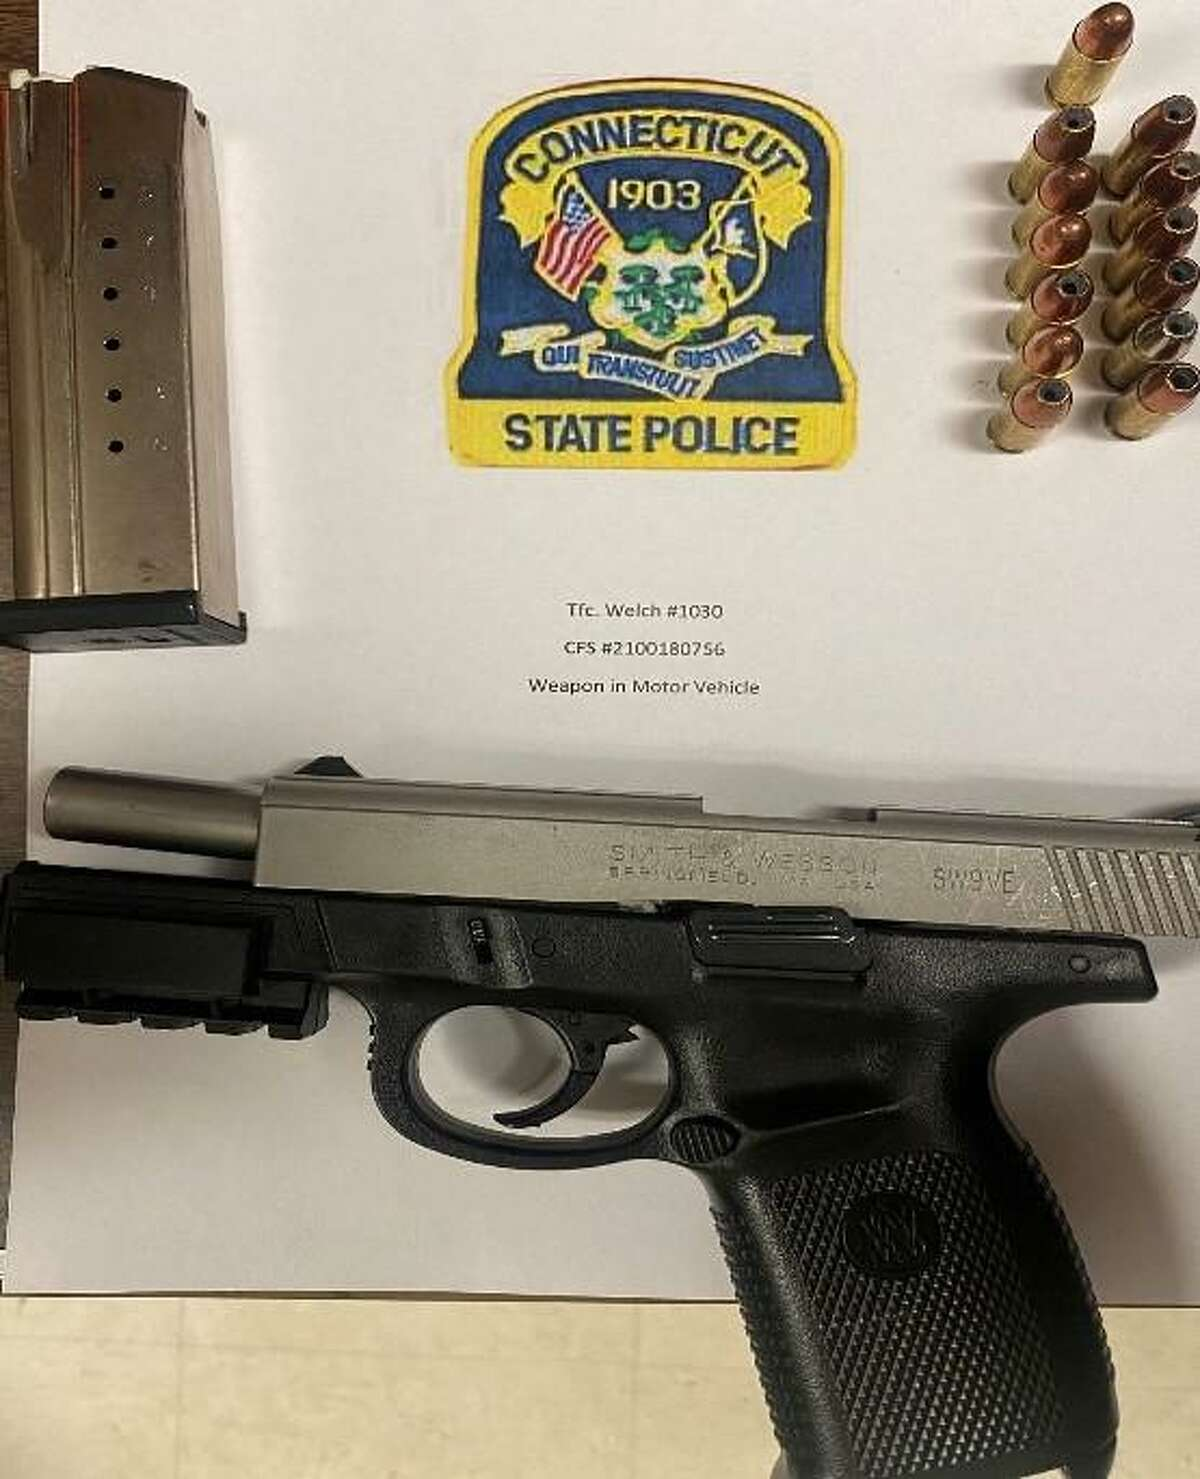 State police said they found this handgun during a search of a motor vehicle on I-91 in Hartford Thursday, May 6, 2021.